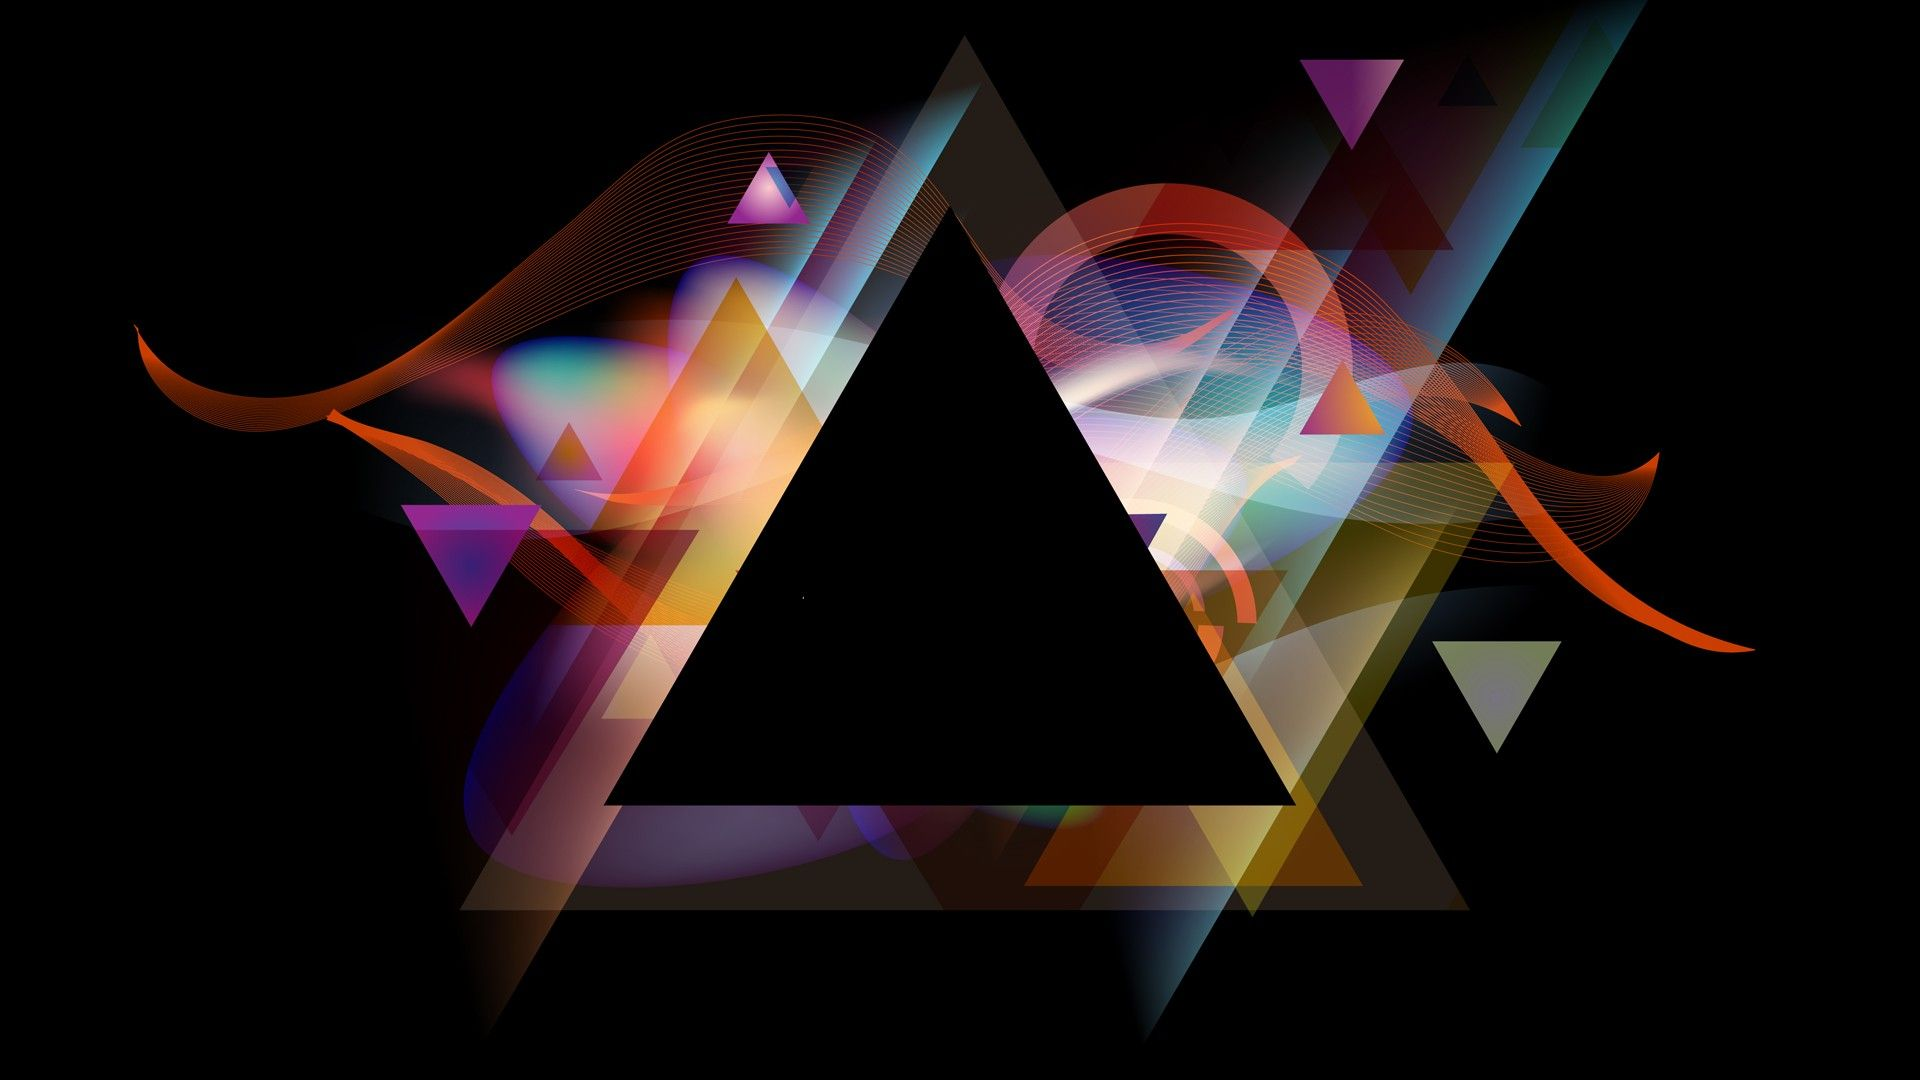 Outstanding hd illuminati wallpapers for ipad 1920x1080px outstanding hd illuminati wallpapers for ipad 1920x1080px voltagebd Image collections